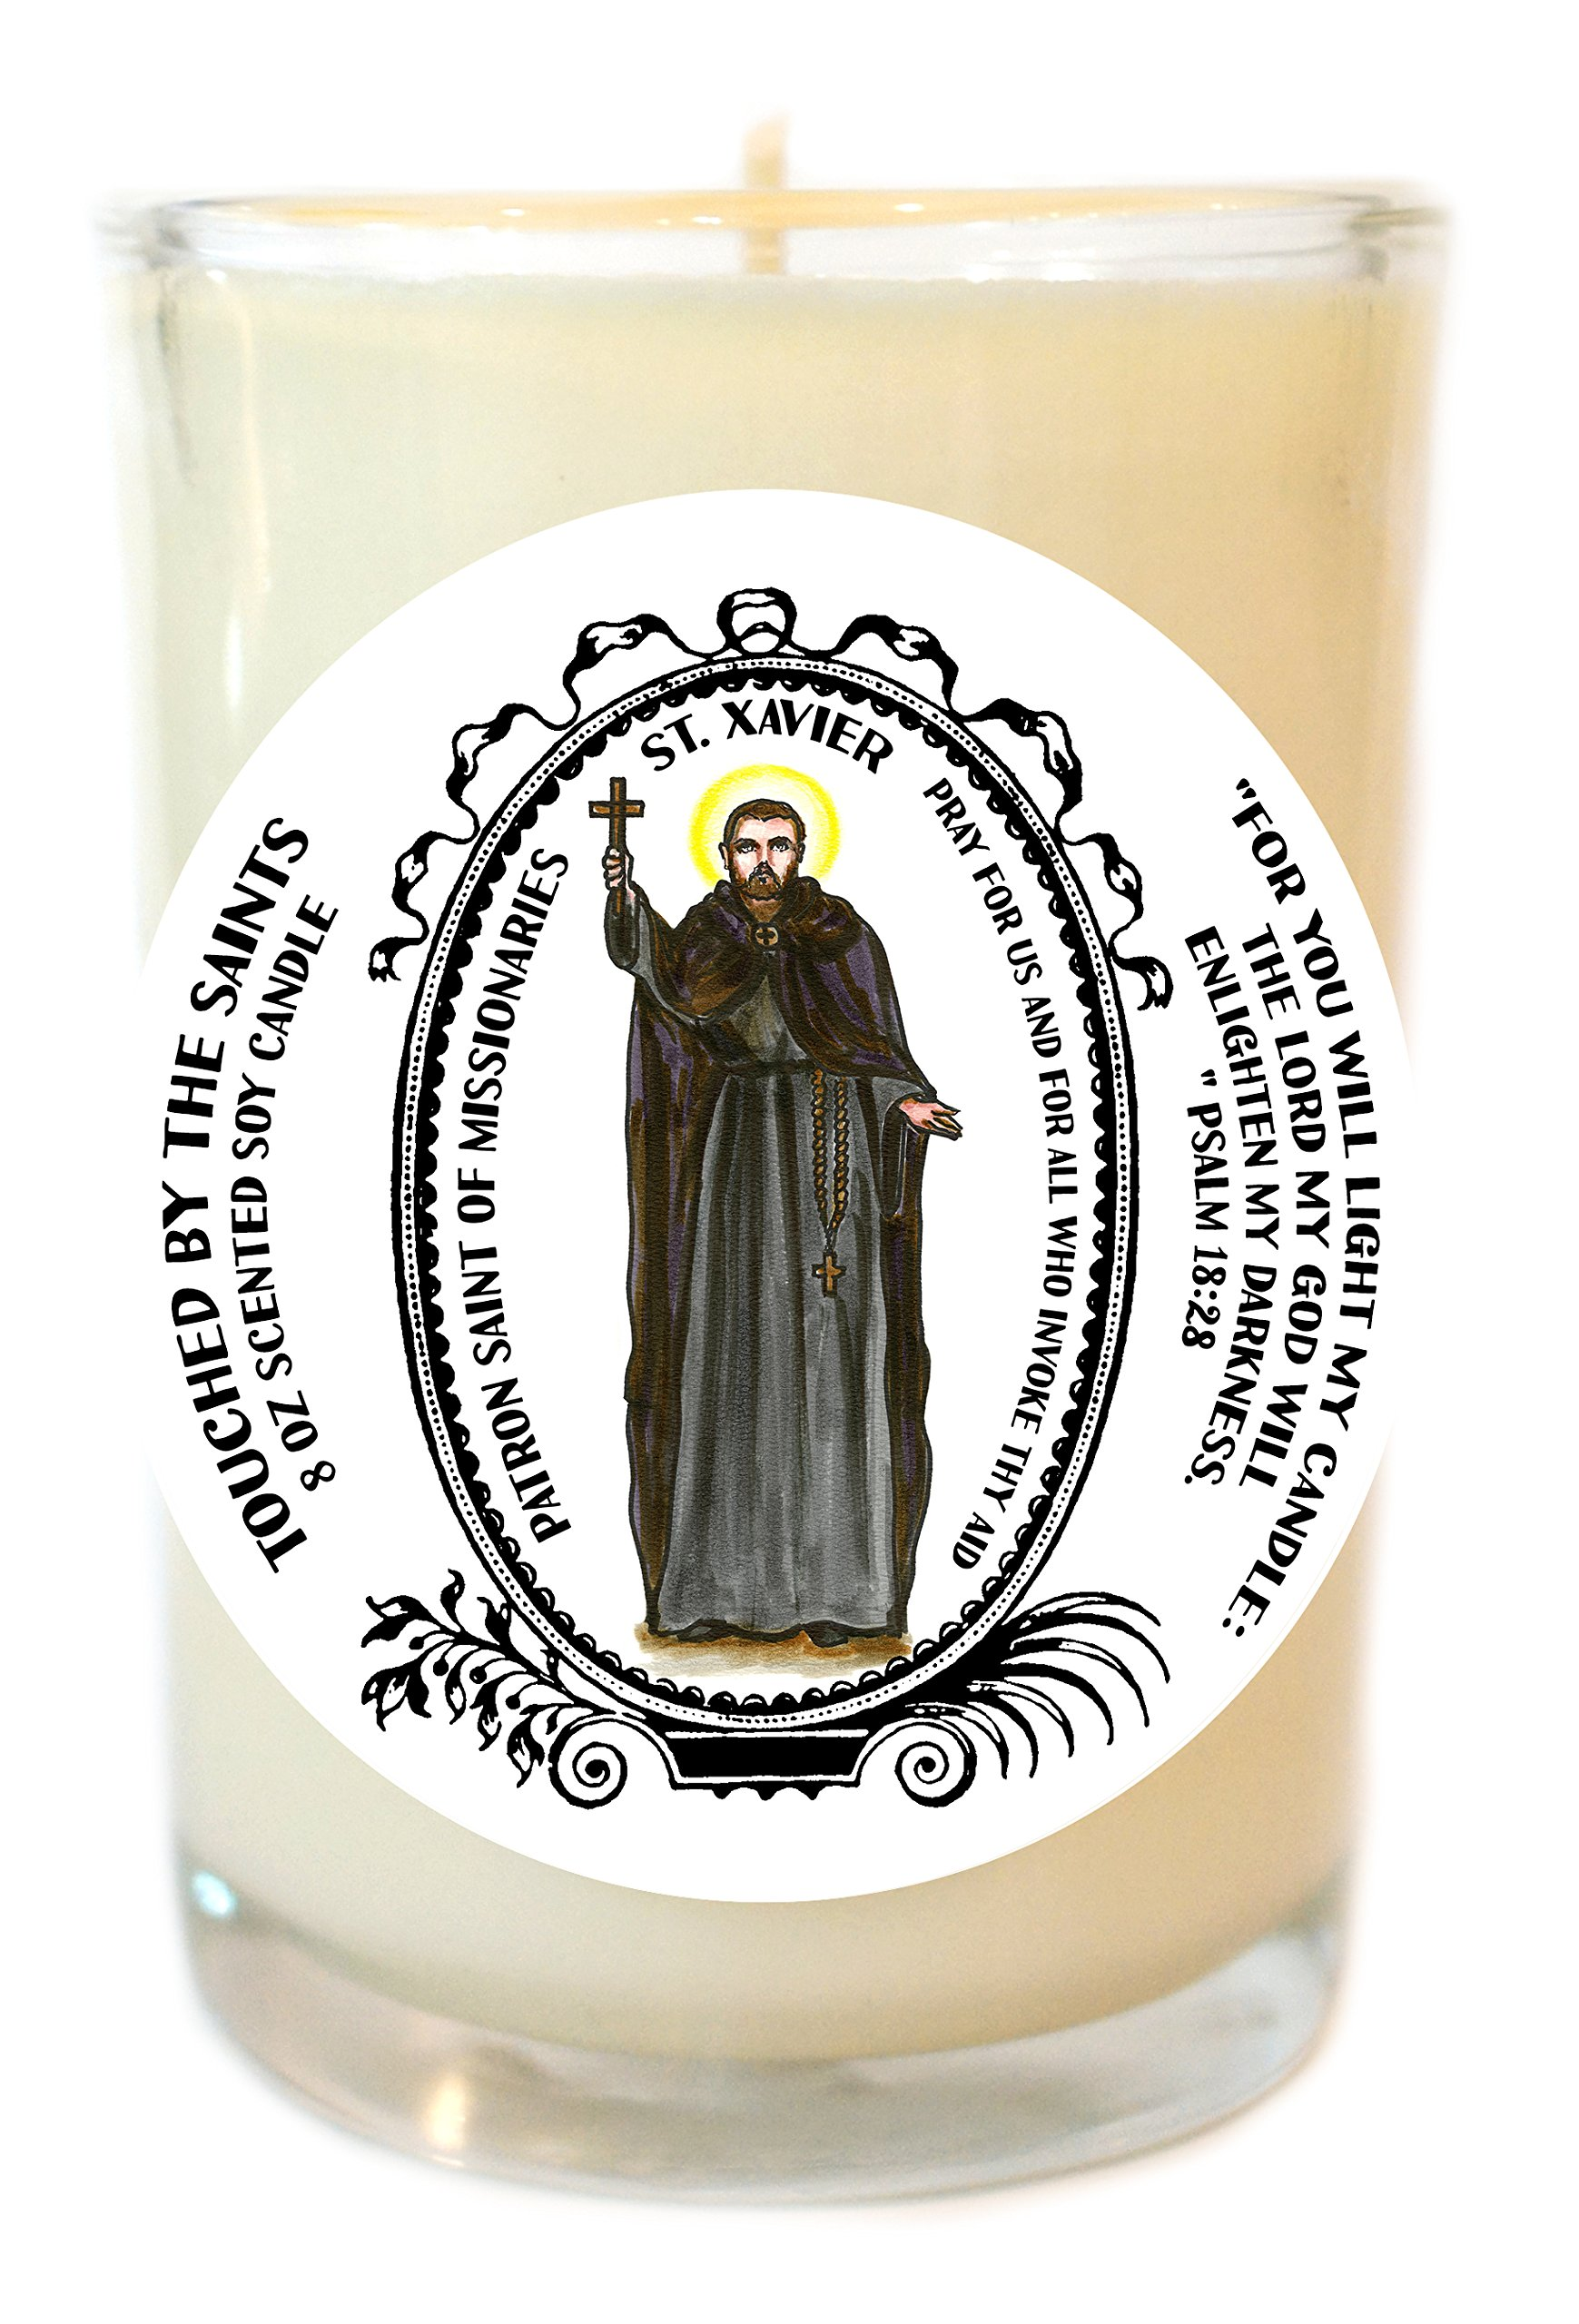 Saint Xavier Patron of Missionaries 8 Oz Scented Soy Prayer Candle